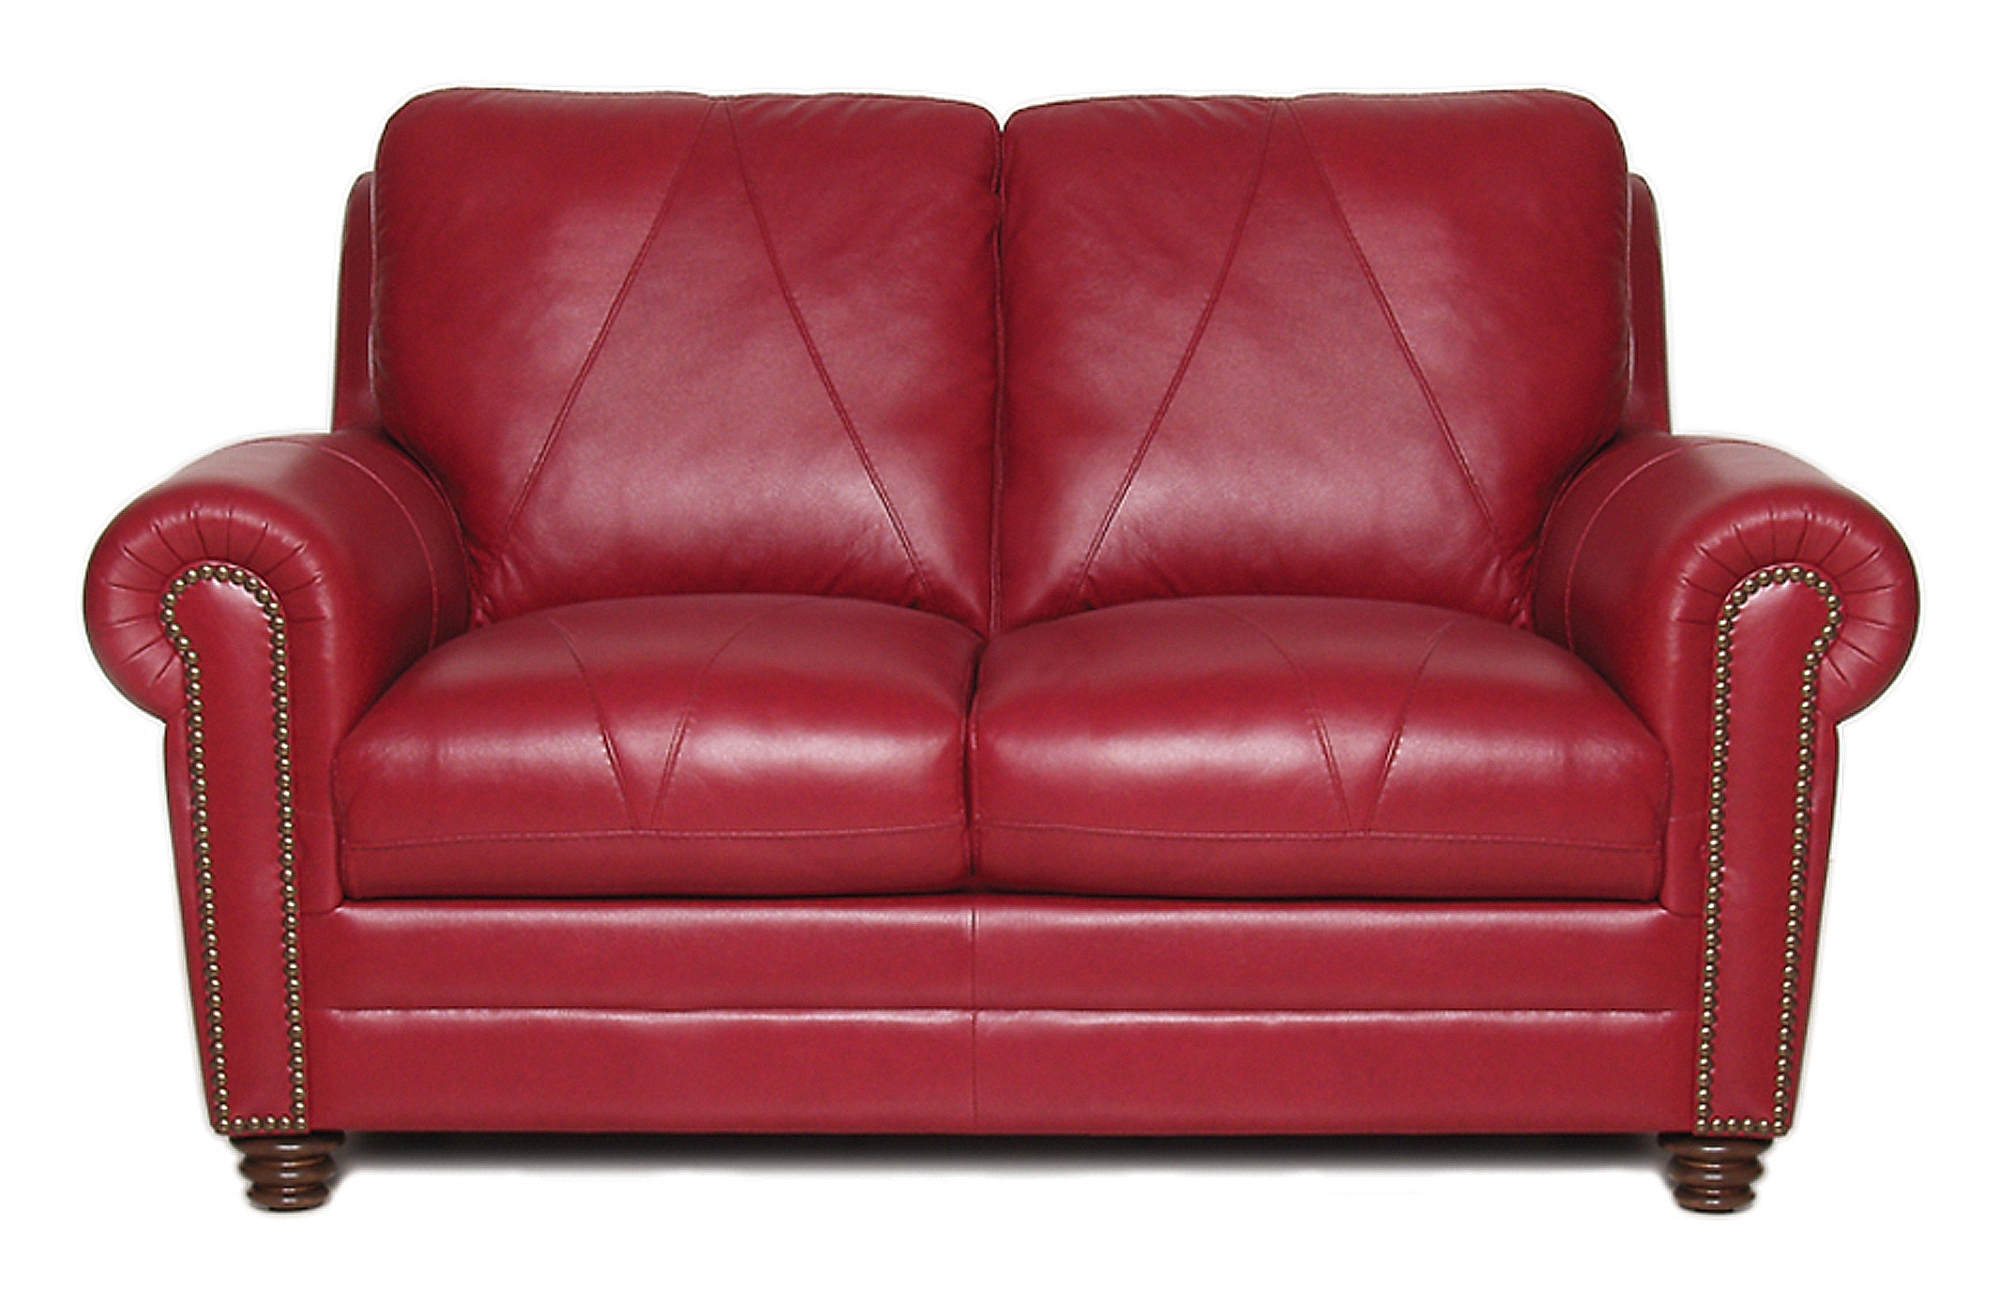 Weston Collection – Luke Leather Furniture Throughout Well Known Red Sofa Chairs (View 12 of 15)